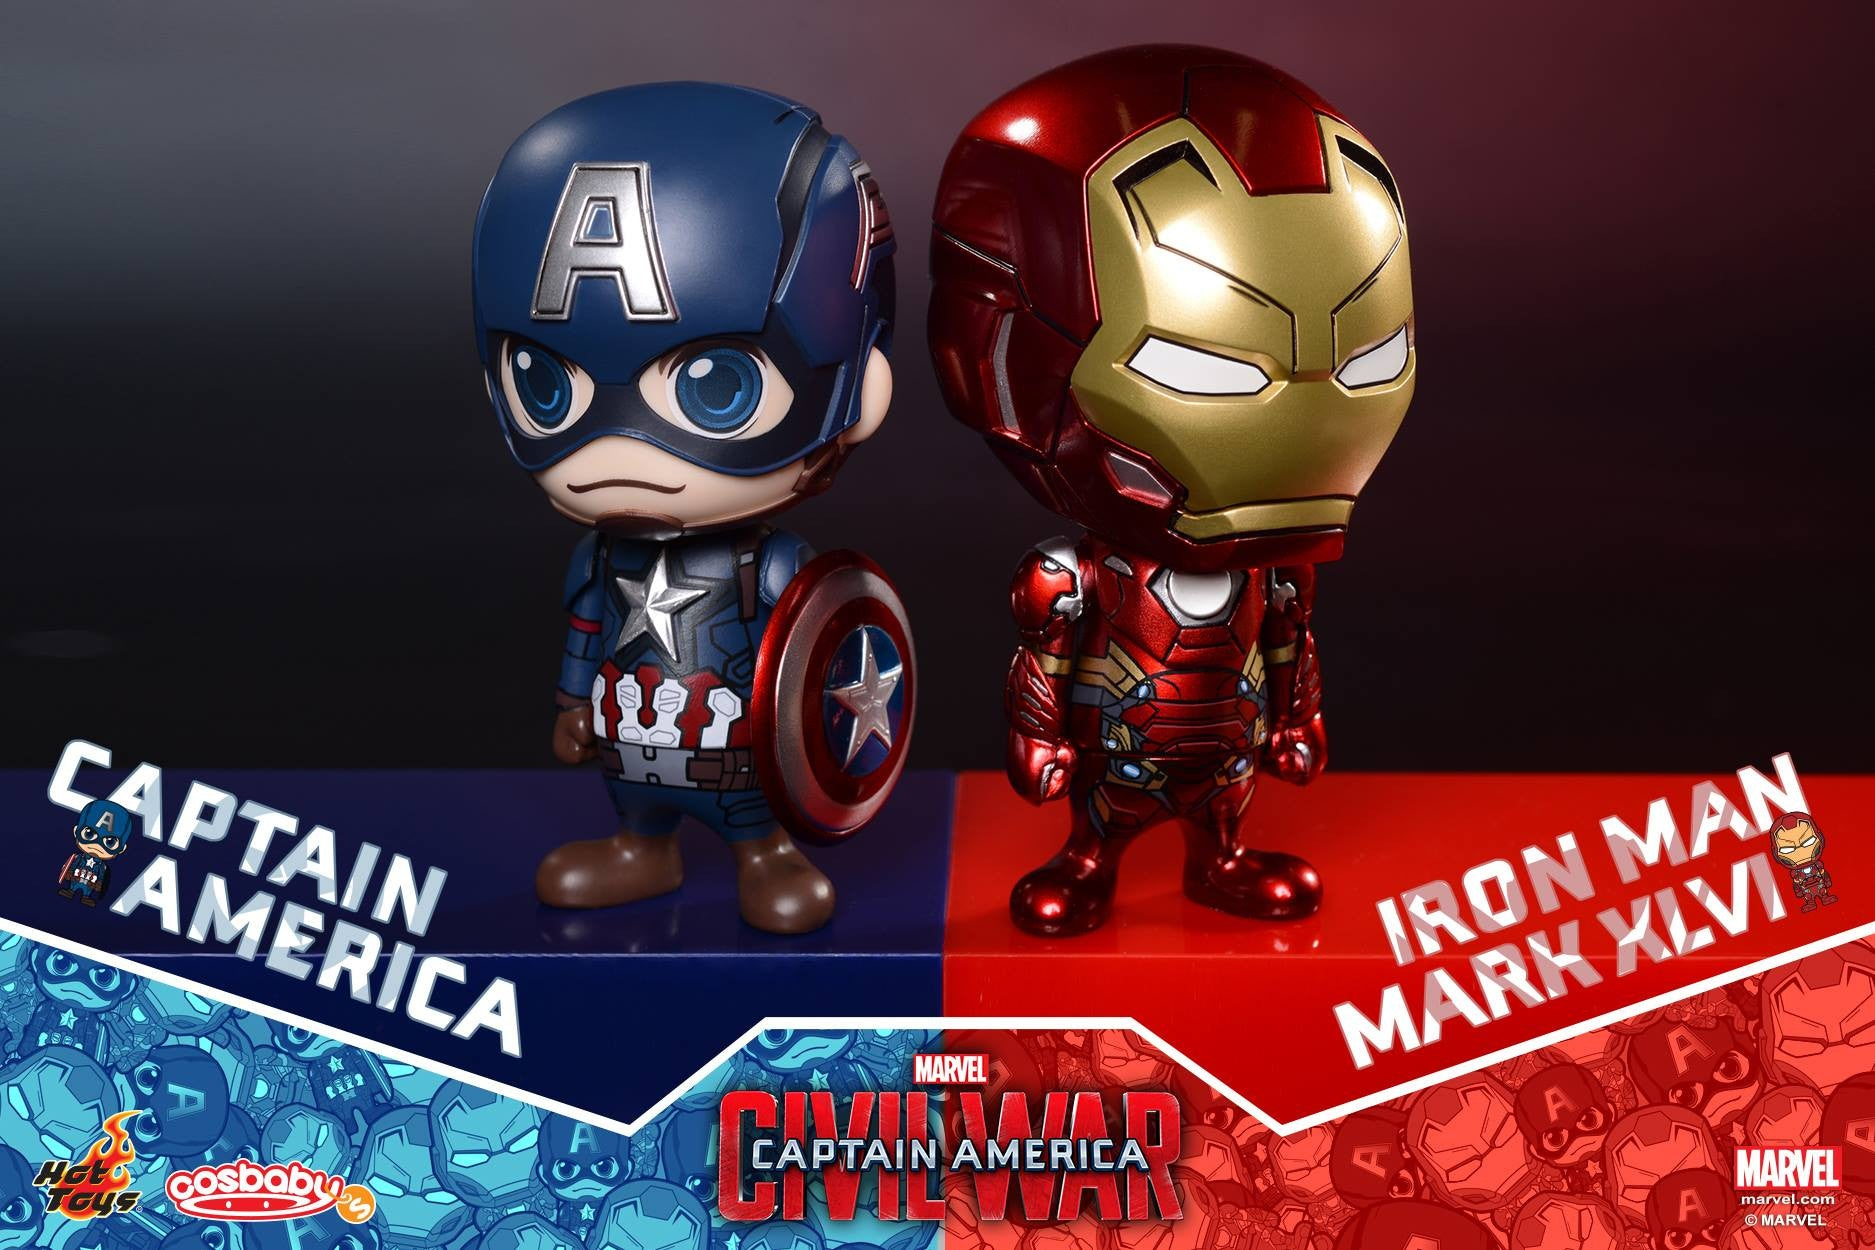 Hot Toys - COSB199-200 - Captain America: Civil War - Captain America & Iron Man Mark XLVI Cosbaby Bobble-Head Set - Marvelous Toys - 1